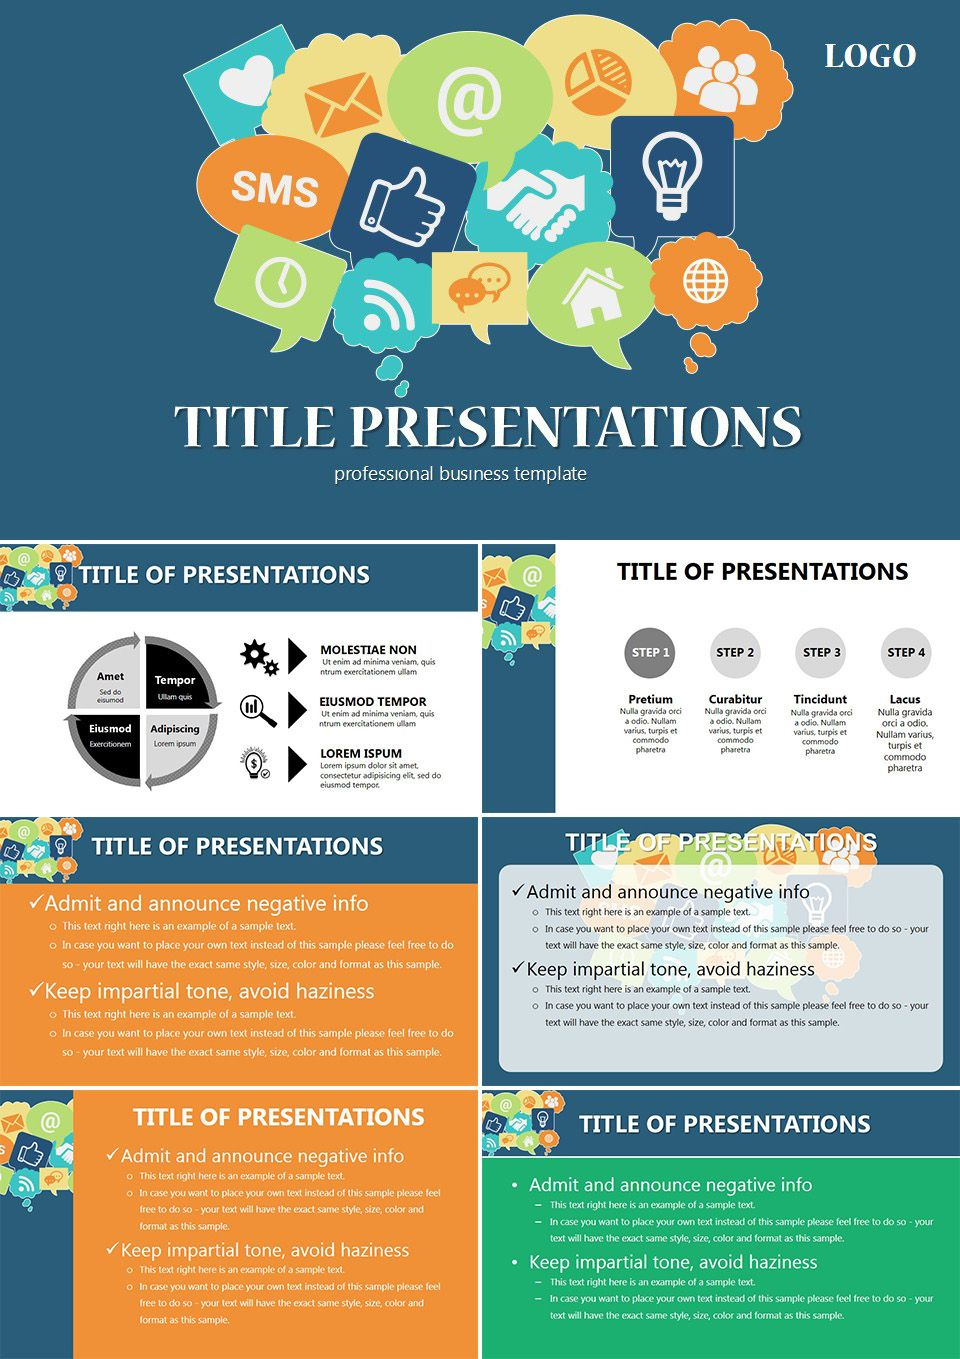 Powerpoint templates social science research internet powerpoint templates social science research internet powerpoint templates toneelgroepblik Image collections